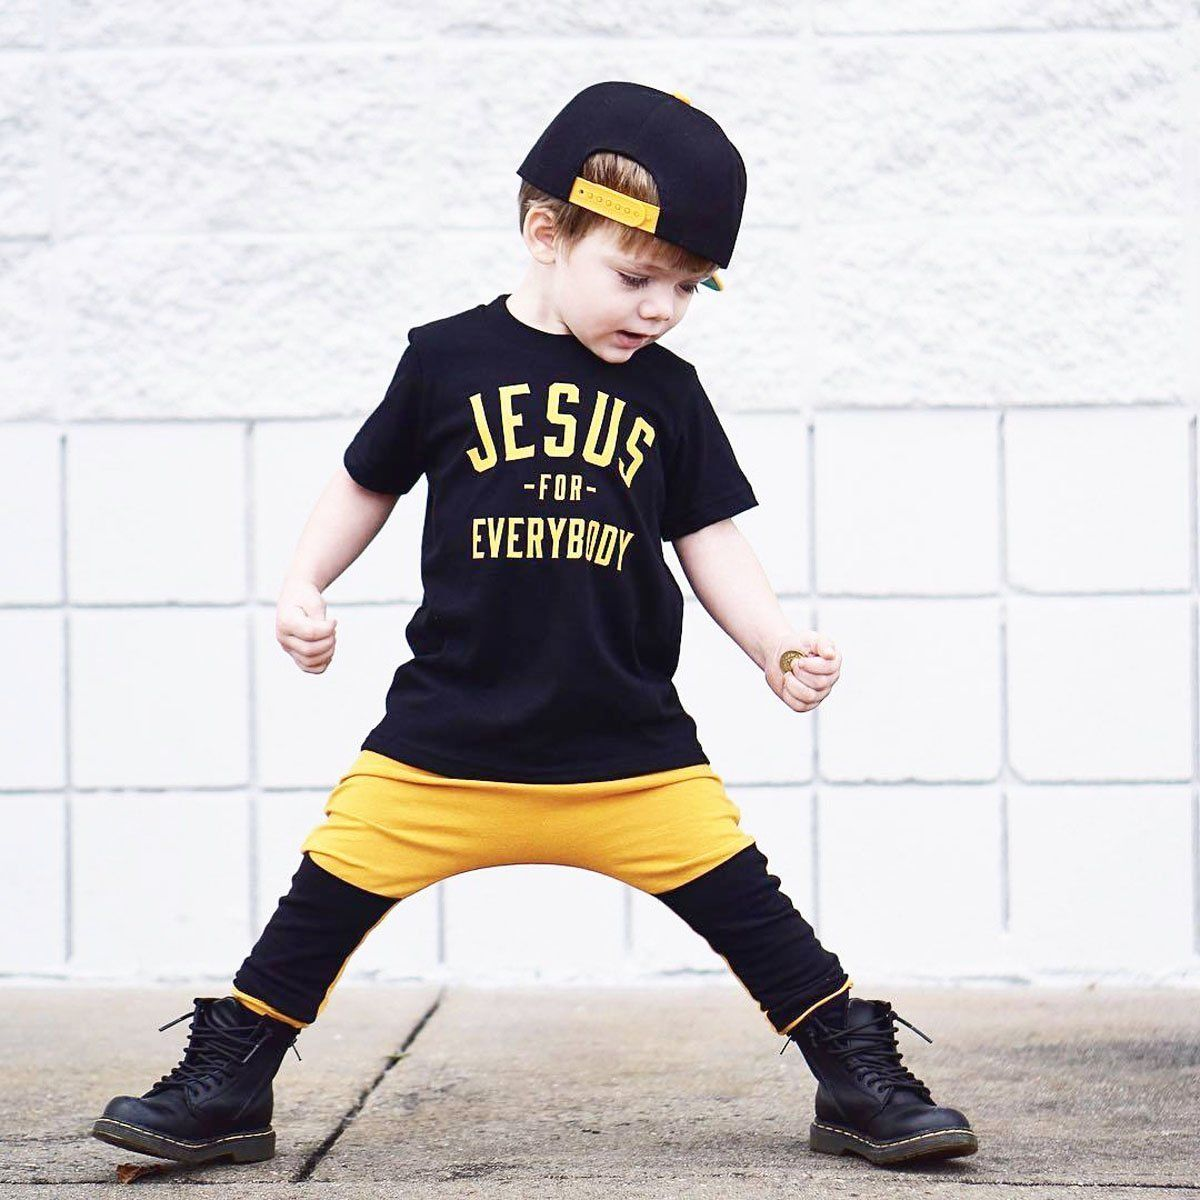 2PCS Newborn Toddler Infant Baby Kids Boy Clothes Short Sleeve Jesus T Shirt Pants Dance Hip Hop Summer Set Outfits Suit 1T~6T 2017 baby boys clothing set gentleman boy clothes toddler summer casual children infant t shirt pants 2pcs boy suit kids clothes